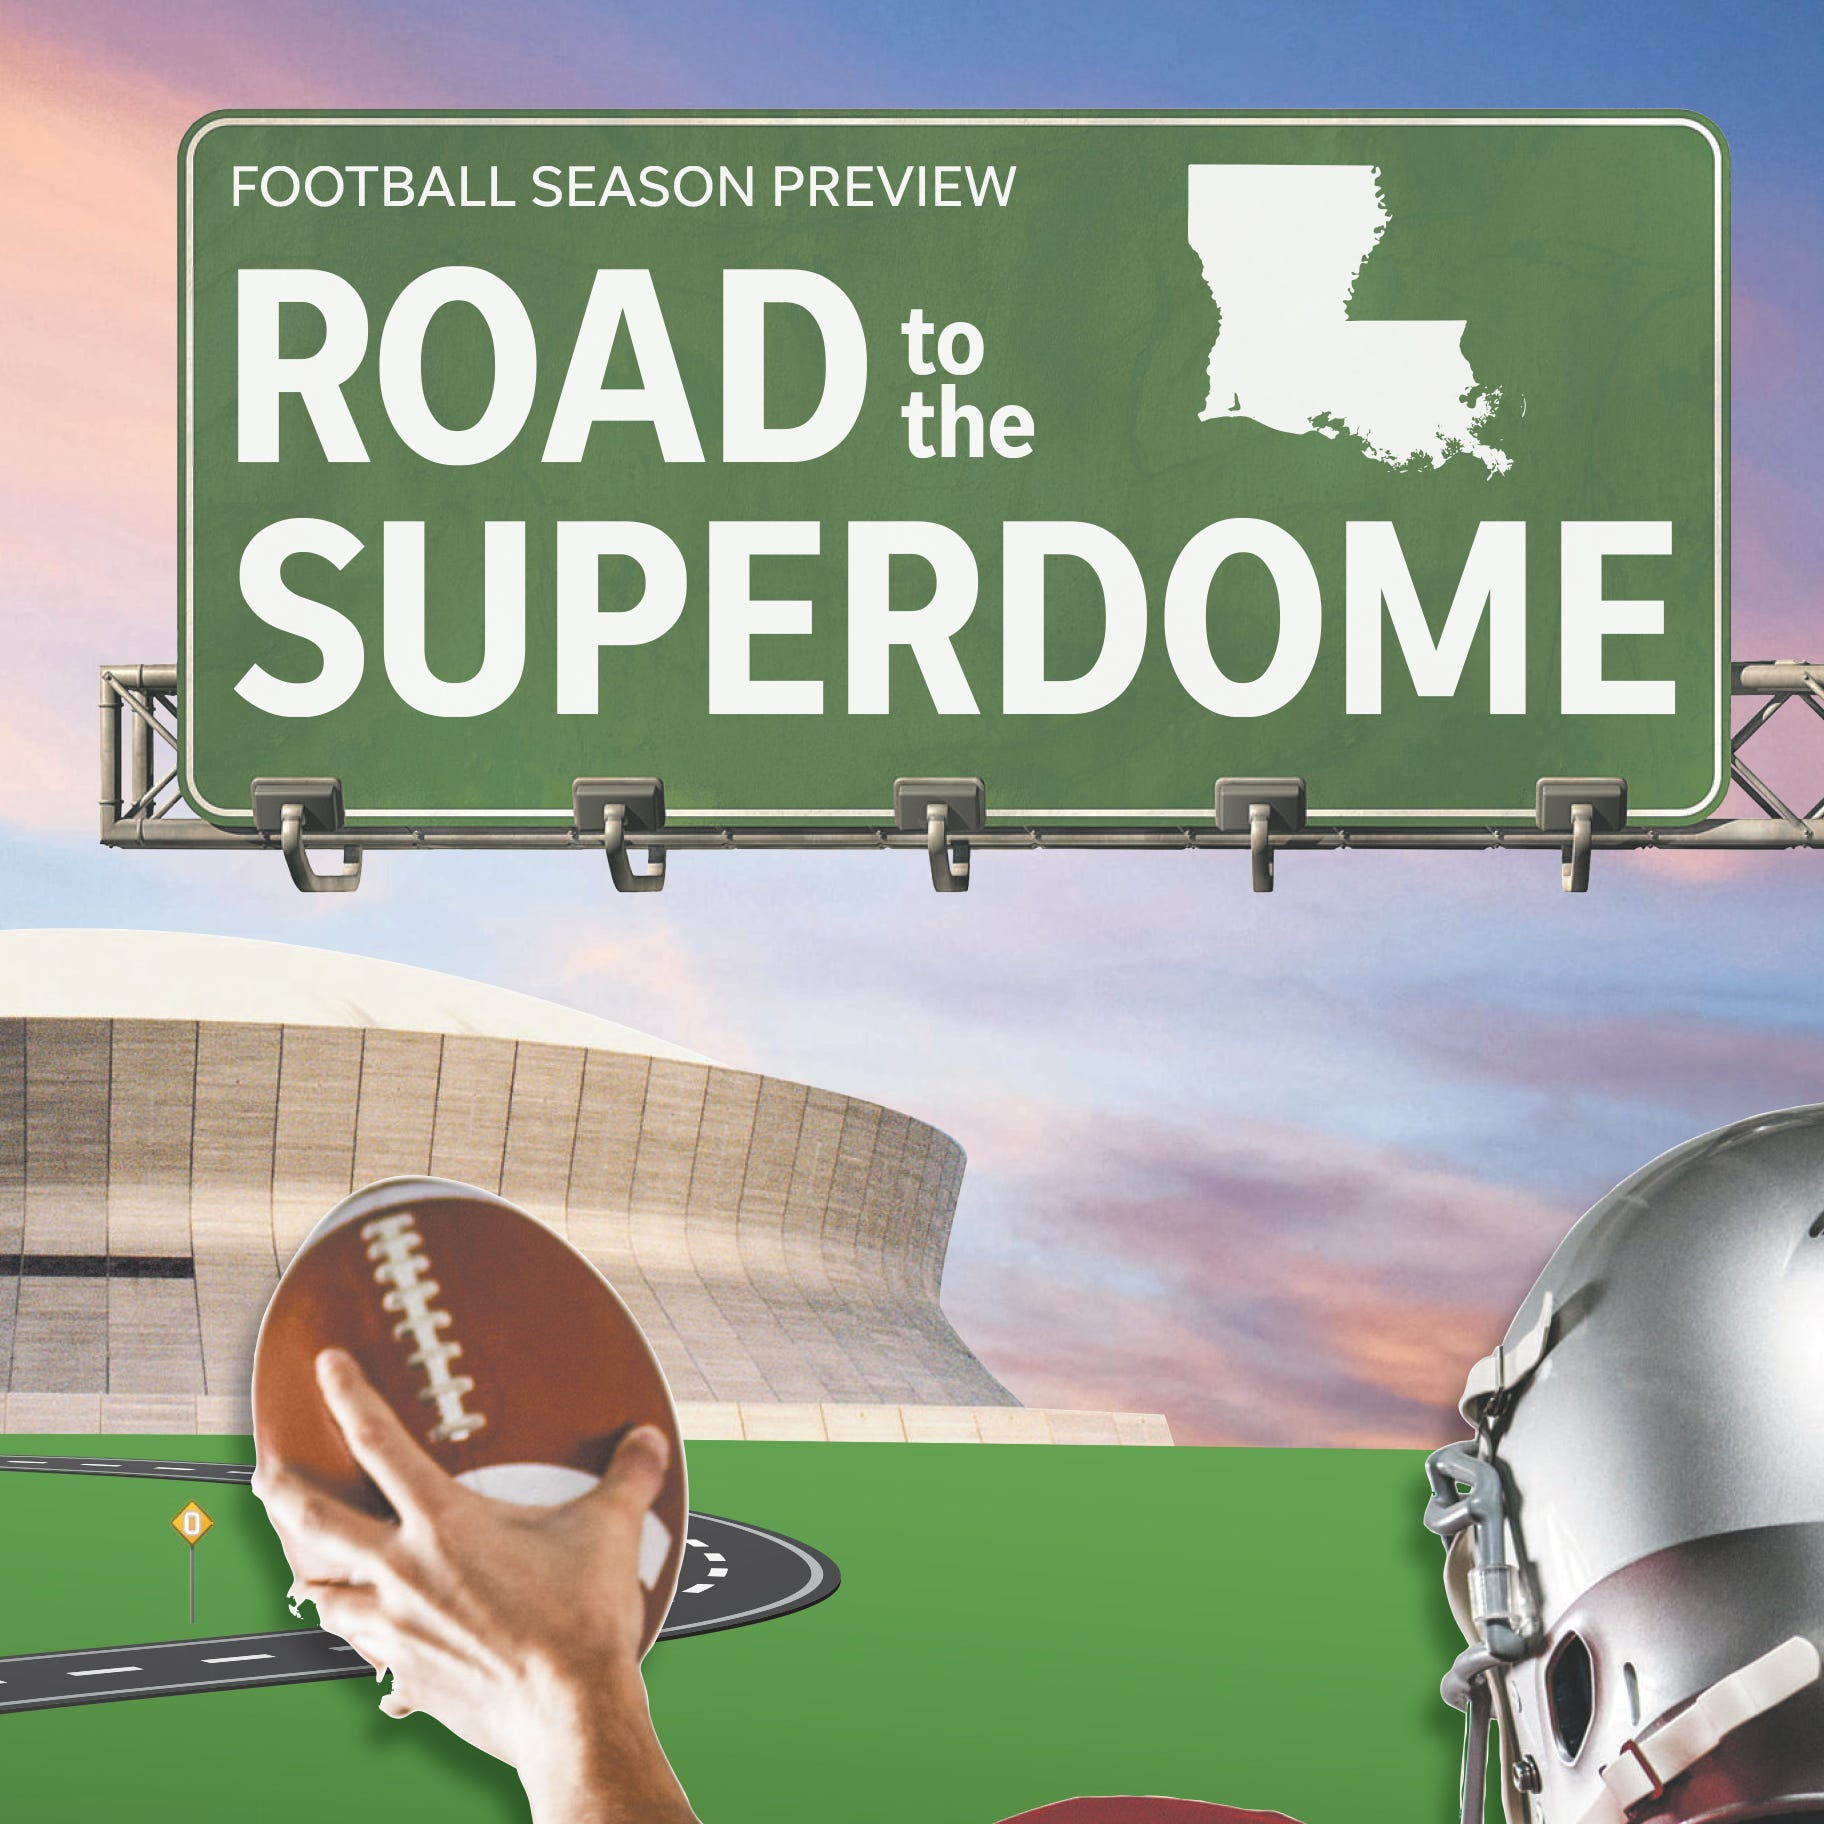 Road to Superdome: Football season preview